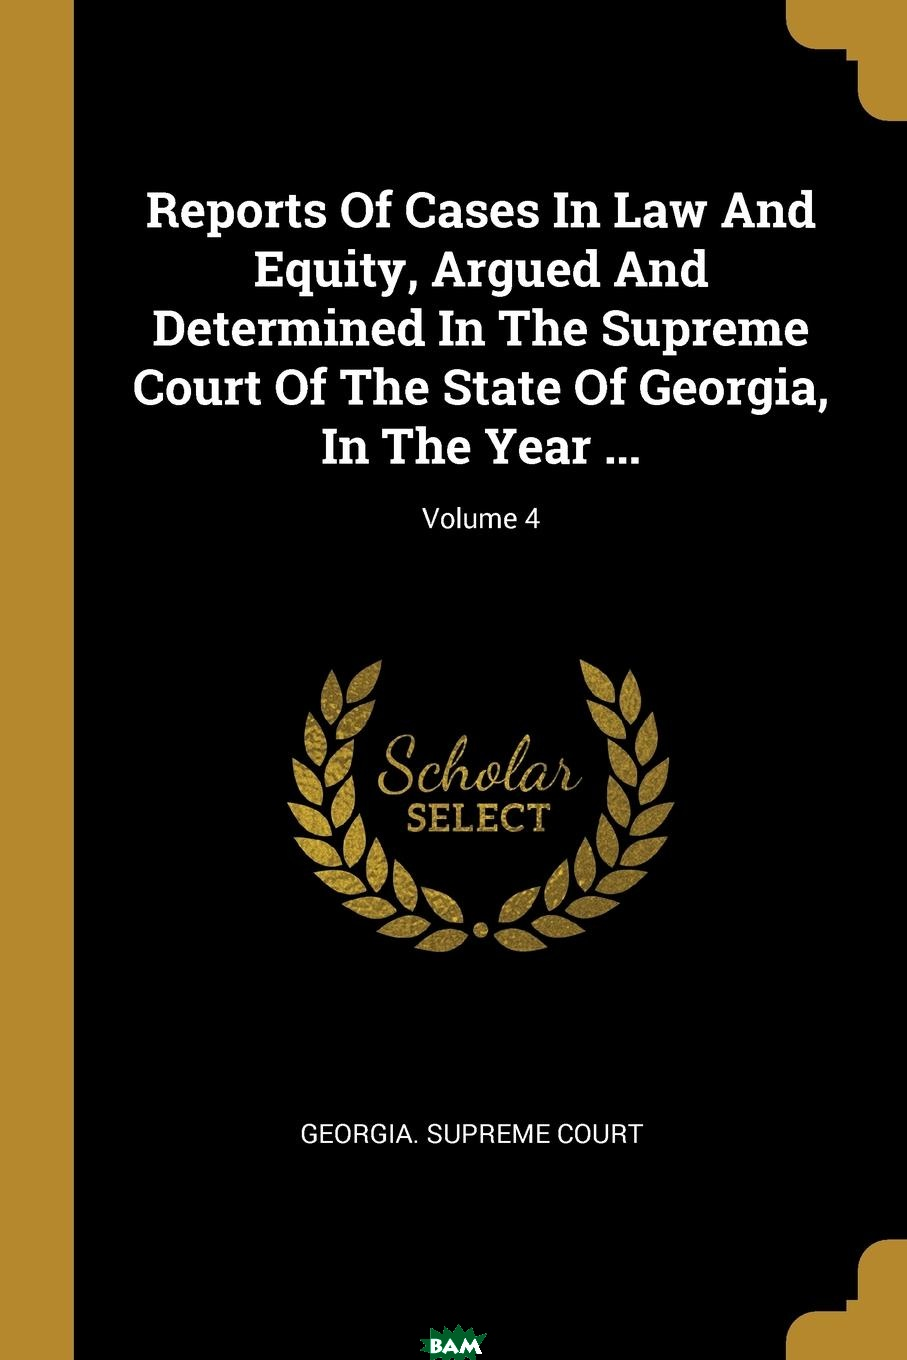 Купить Reports Of Cases In Law And Equity, Argued And Determined In The Supreme Court Of The State Of Georgia, In The Year ...; Volume 4, Georgia. Supreme Court, 9781011638413